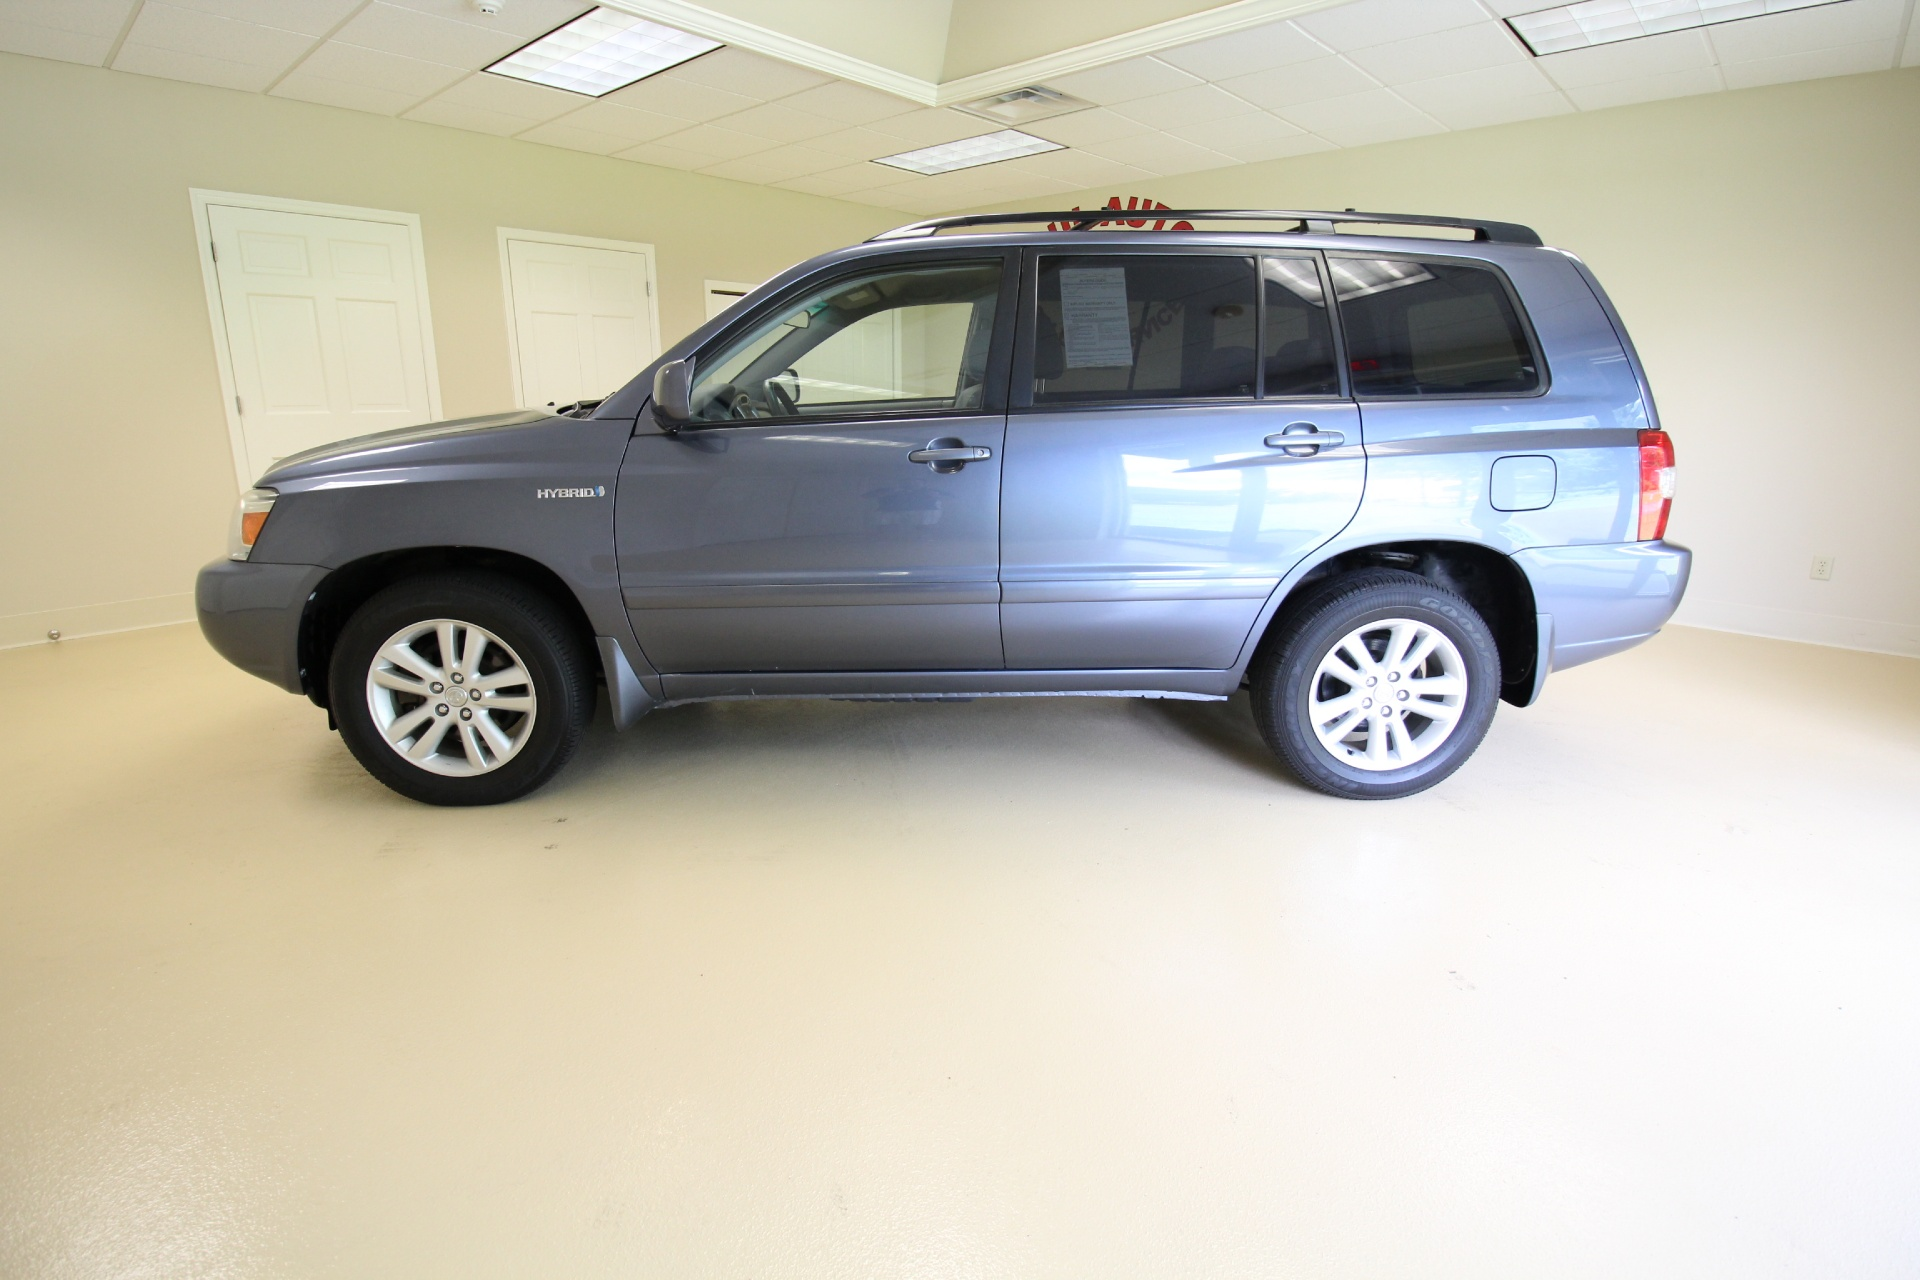 2007 toyota highlander hybrid awd 4wd 3rd row seat stock 16145 for sale near albany ny ny. Black Bedroom Furniture Sets. Home Design Ideas